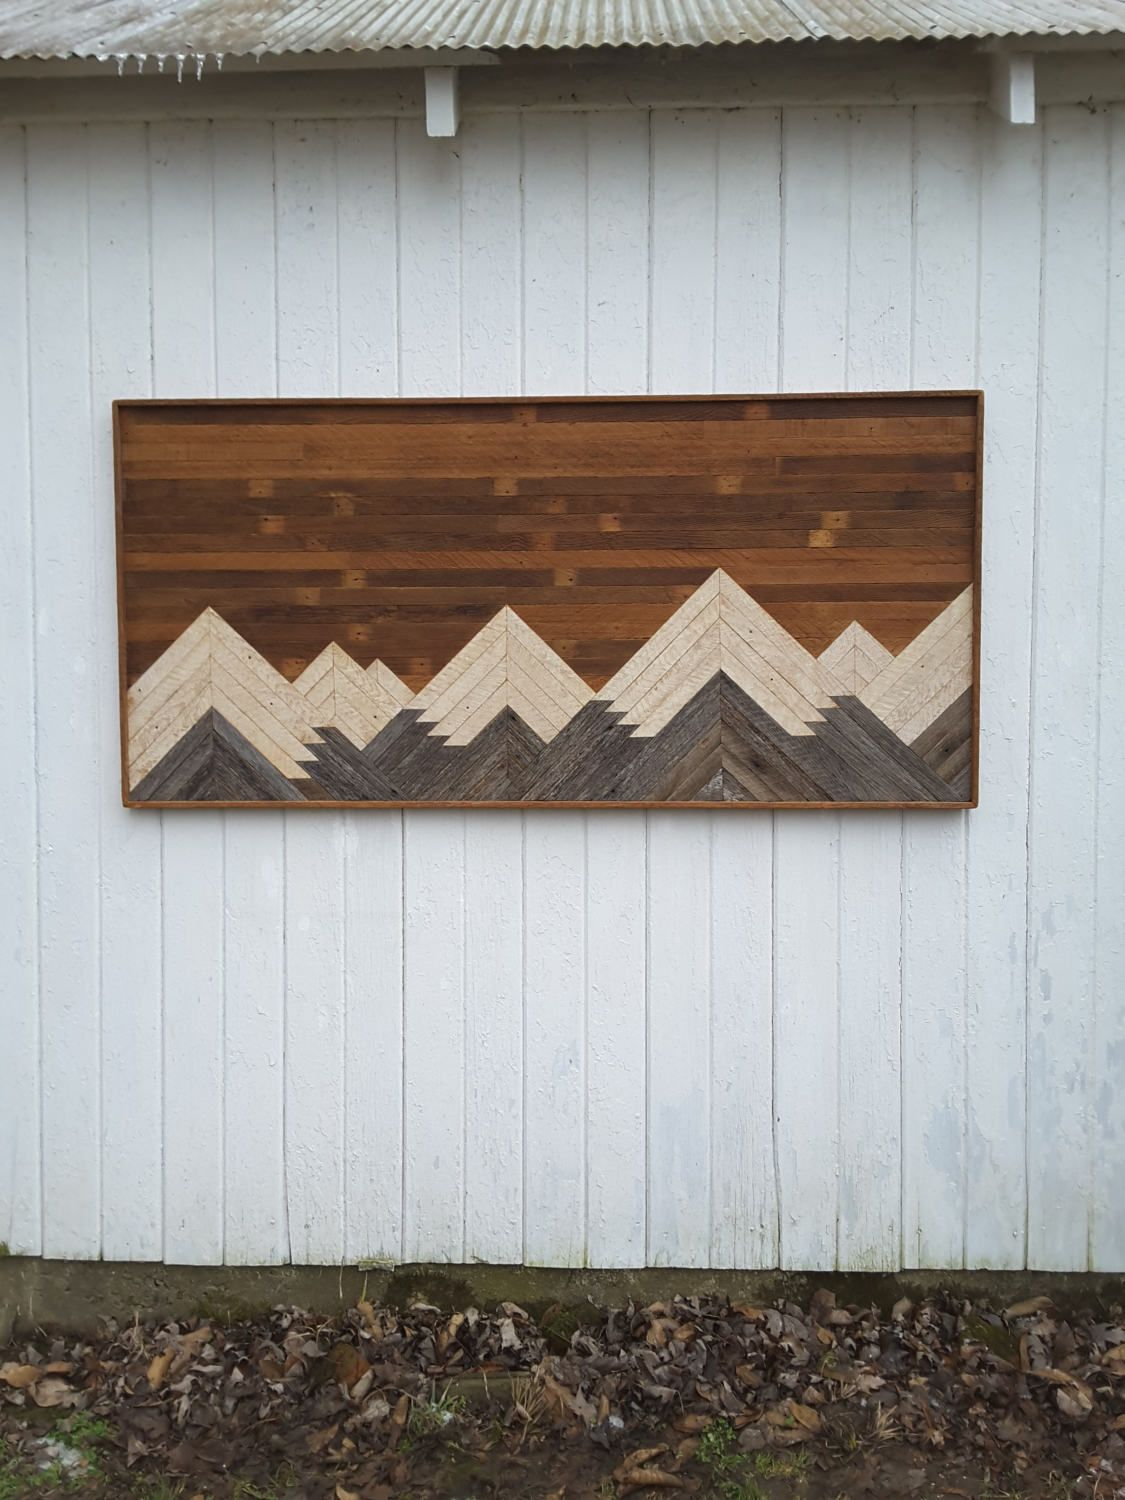 Reclaimed wood wall art mountains bedroom furniture large wall decor headboard